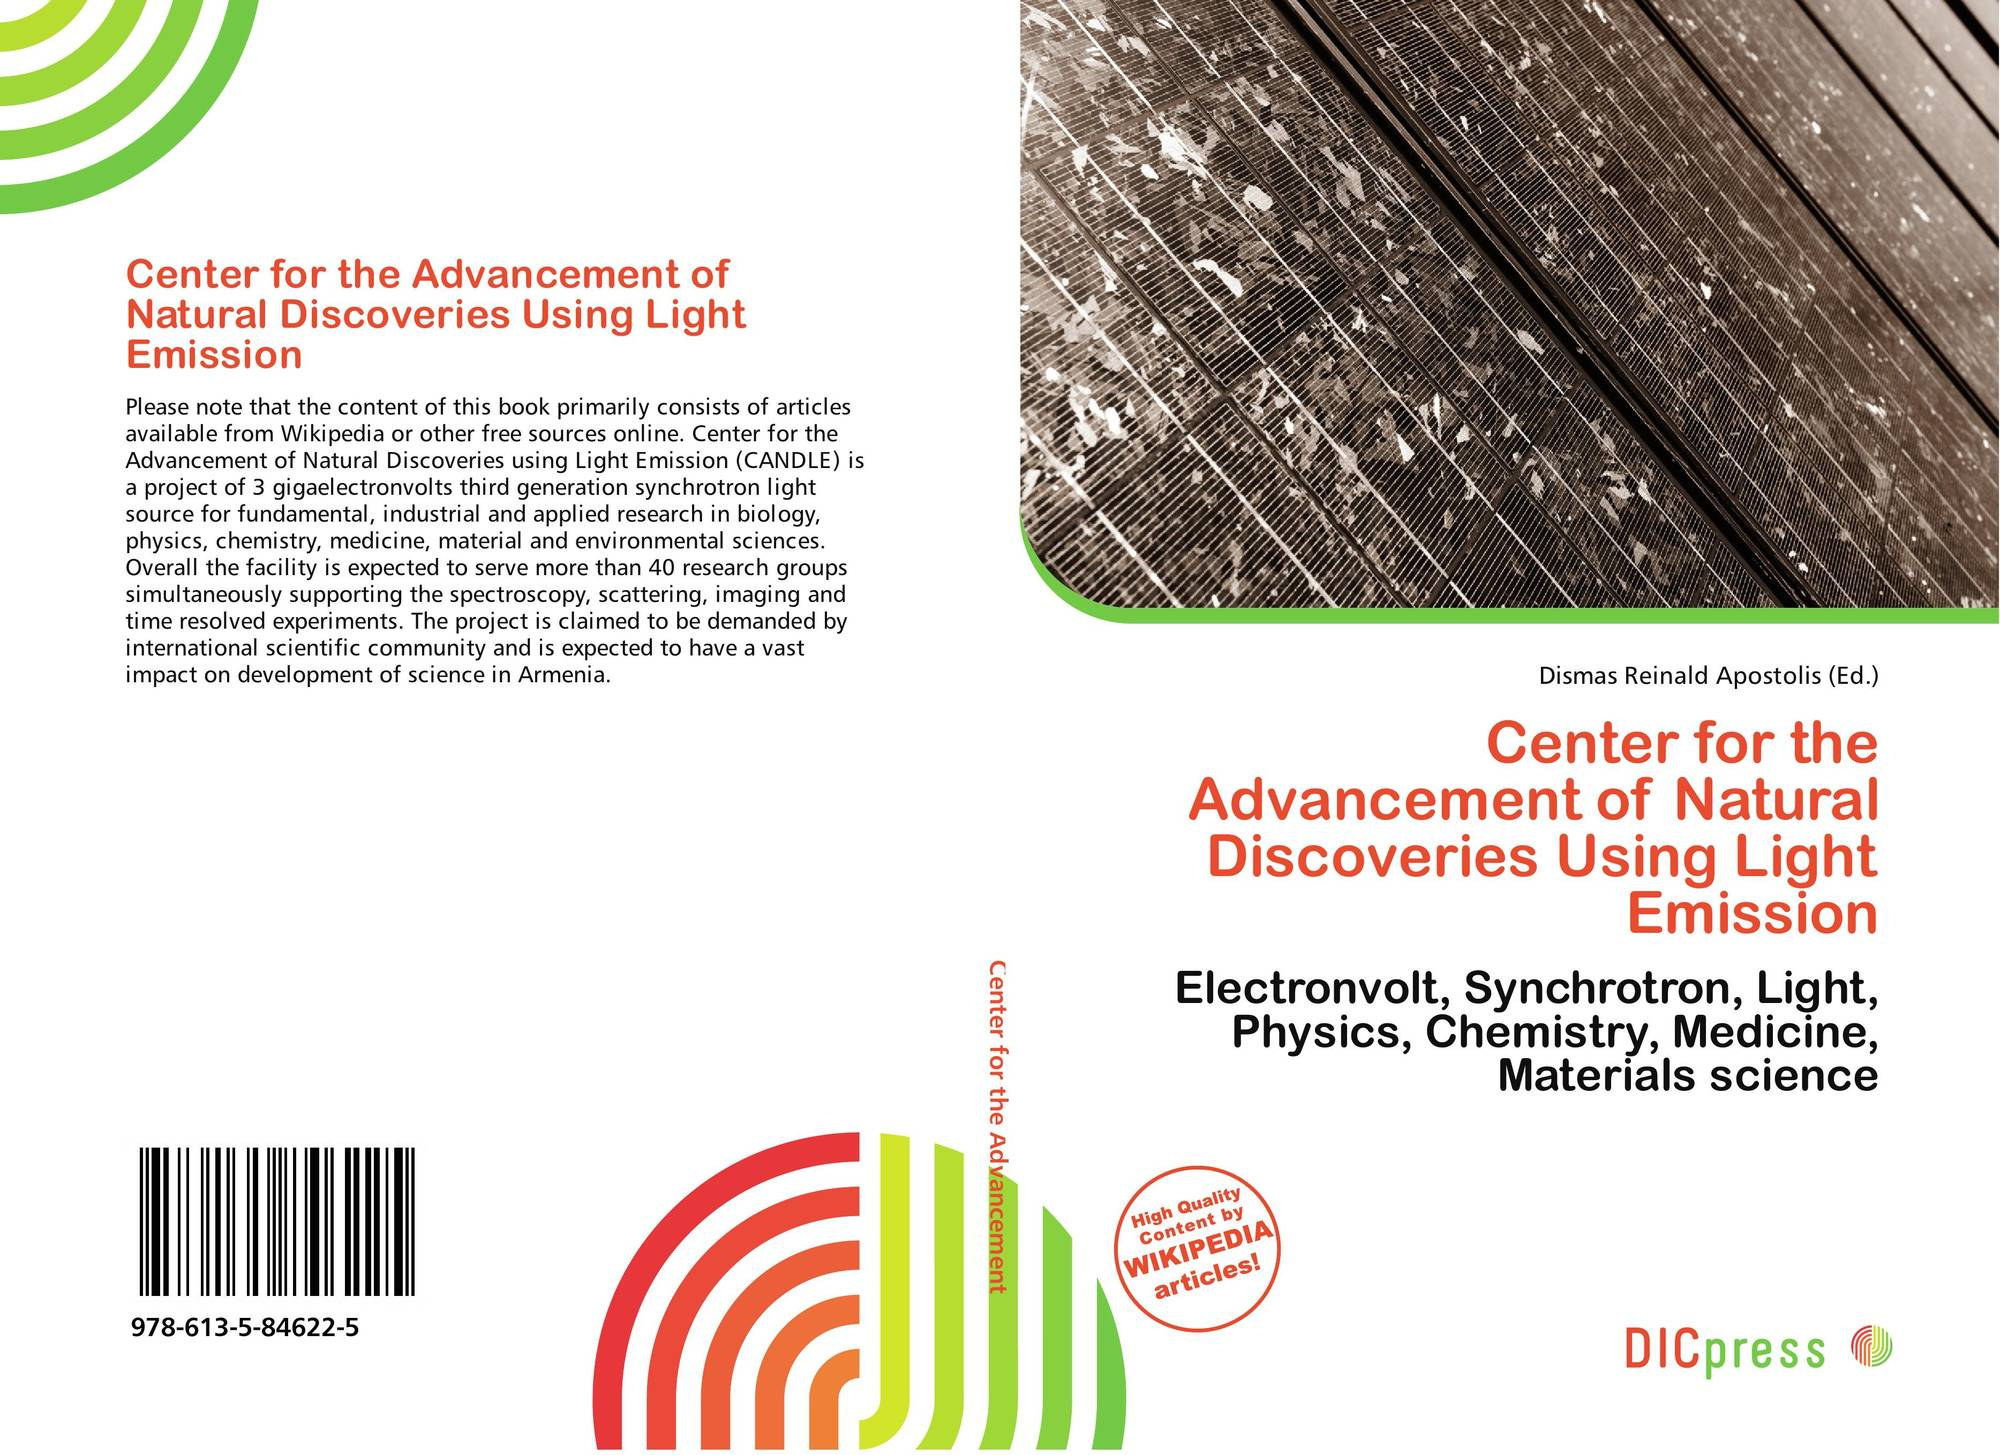 Center For The Advancement Of Natural Discoveries Using